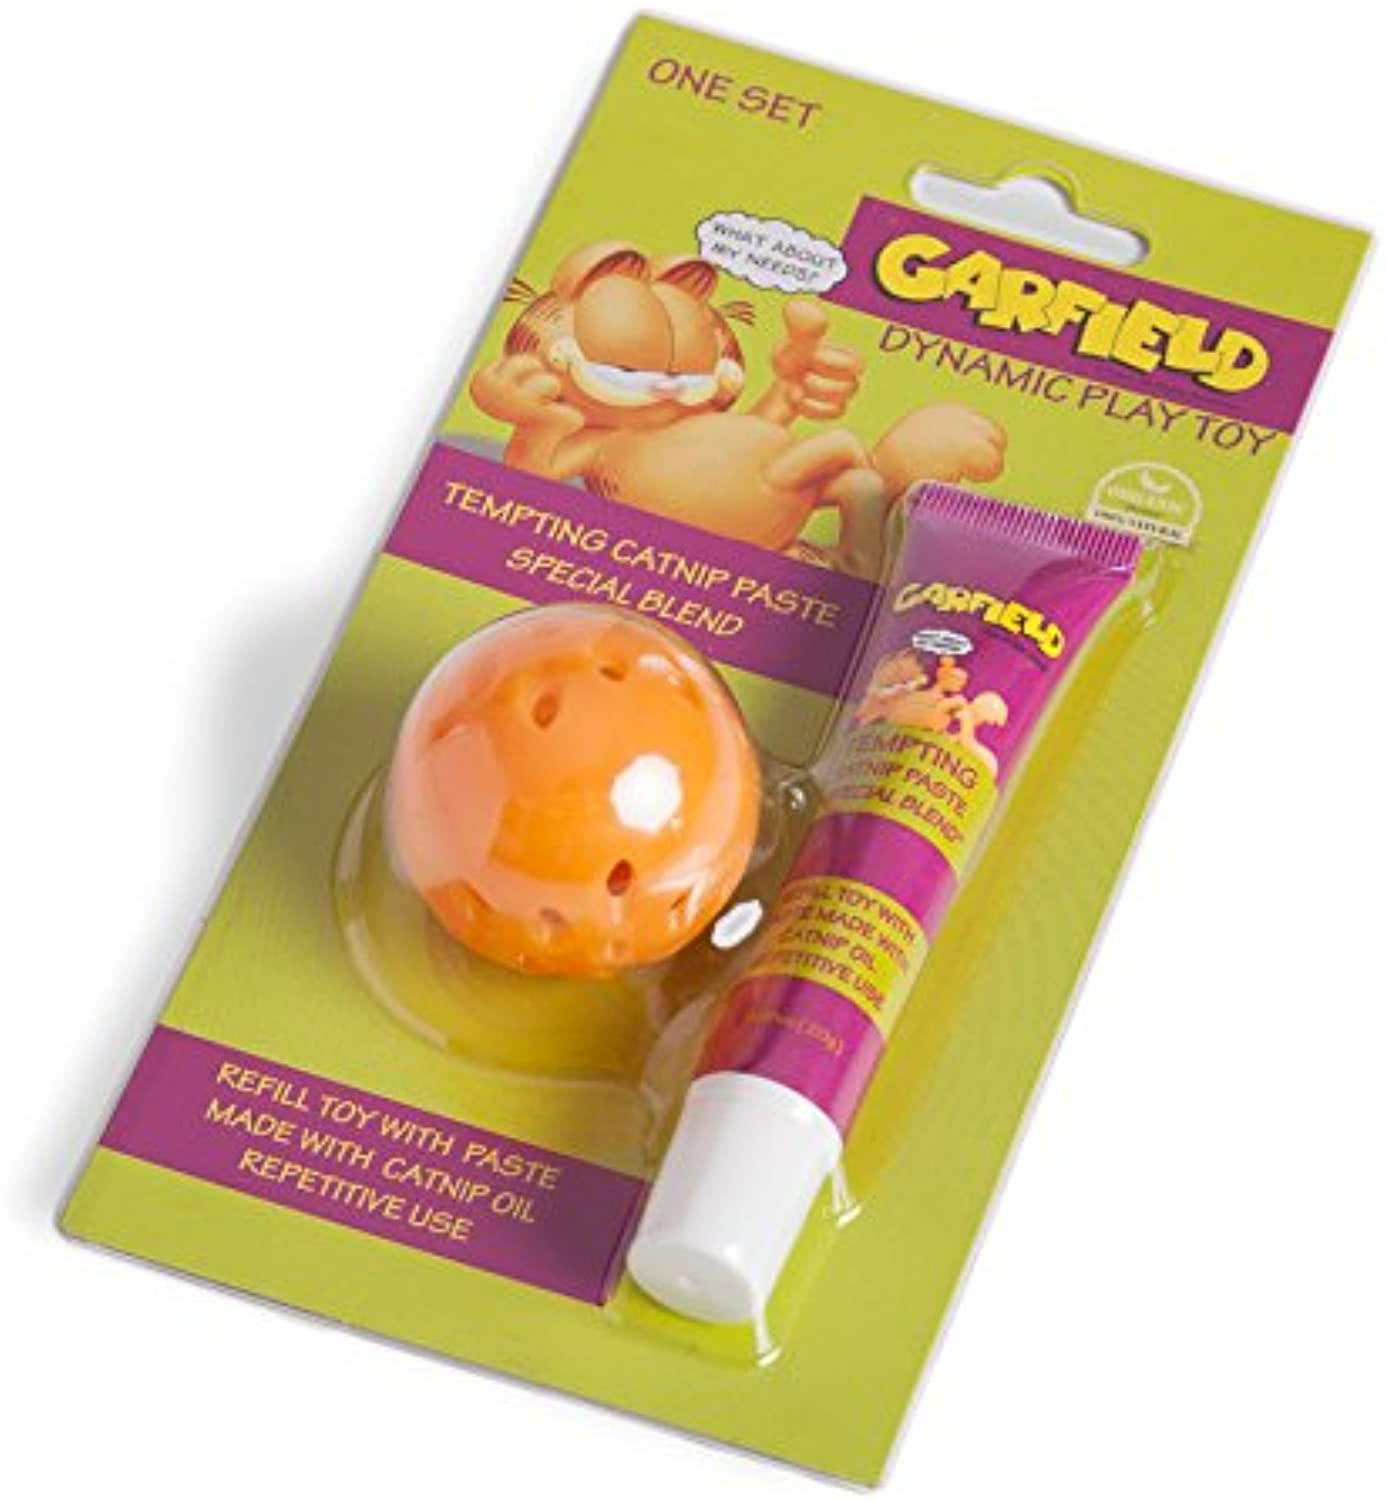 Garfield Dynamic Ball Toy with Catnip Paste